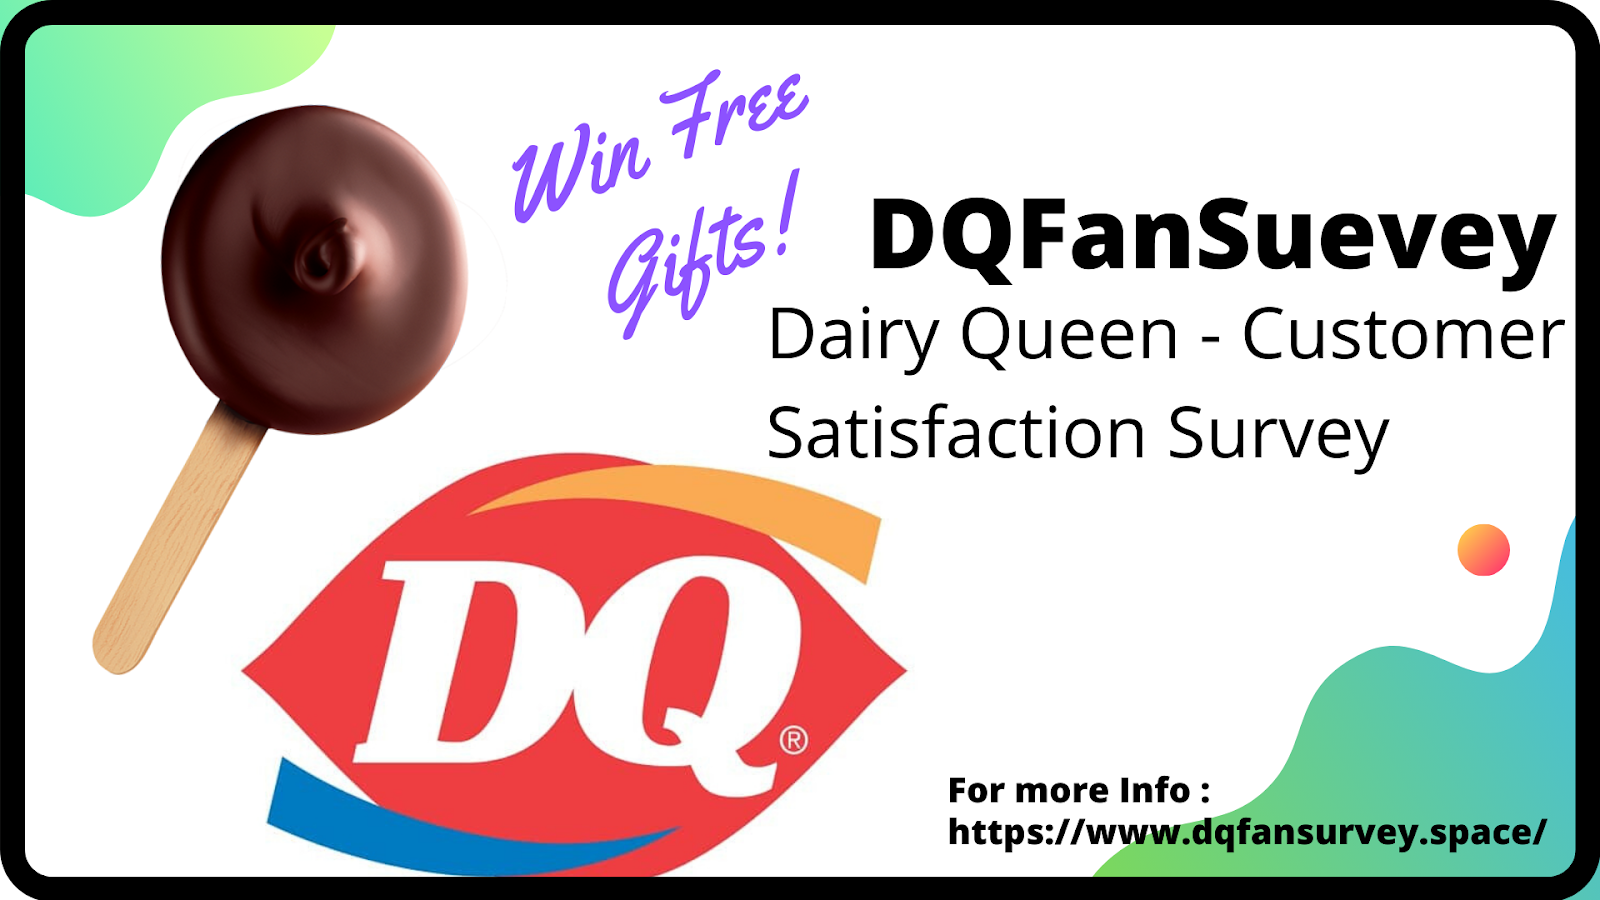 Dqfansurvey and DqfanFeedback